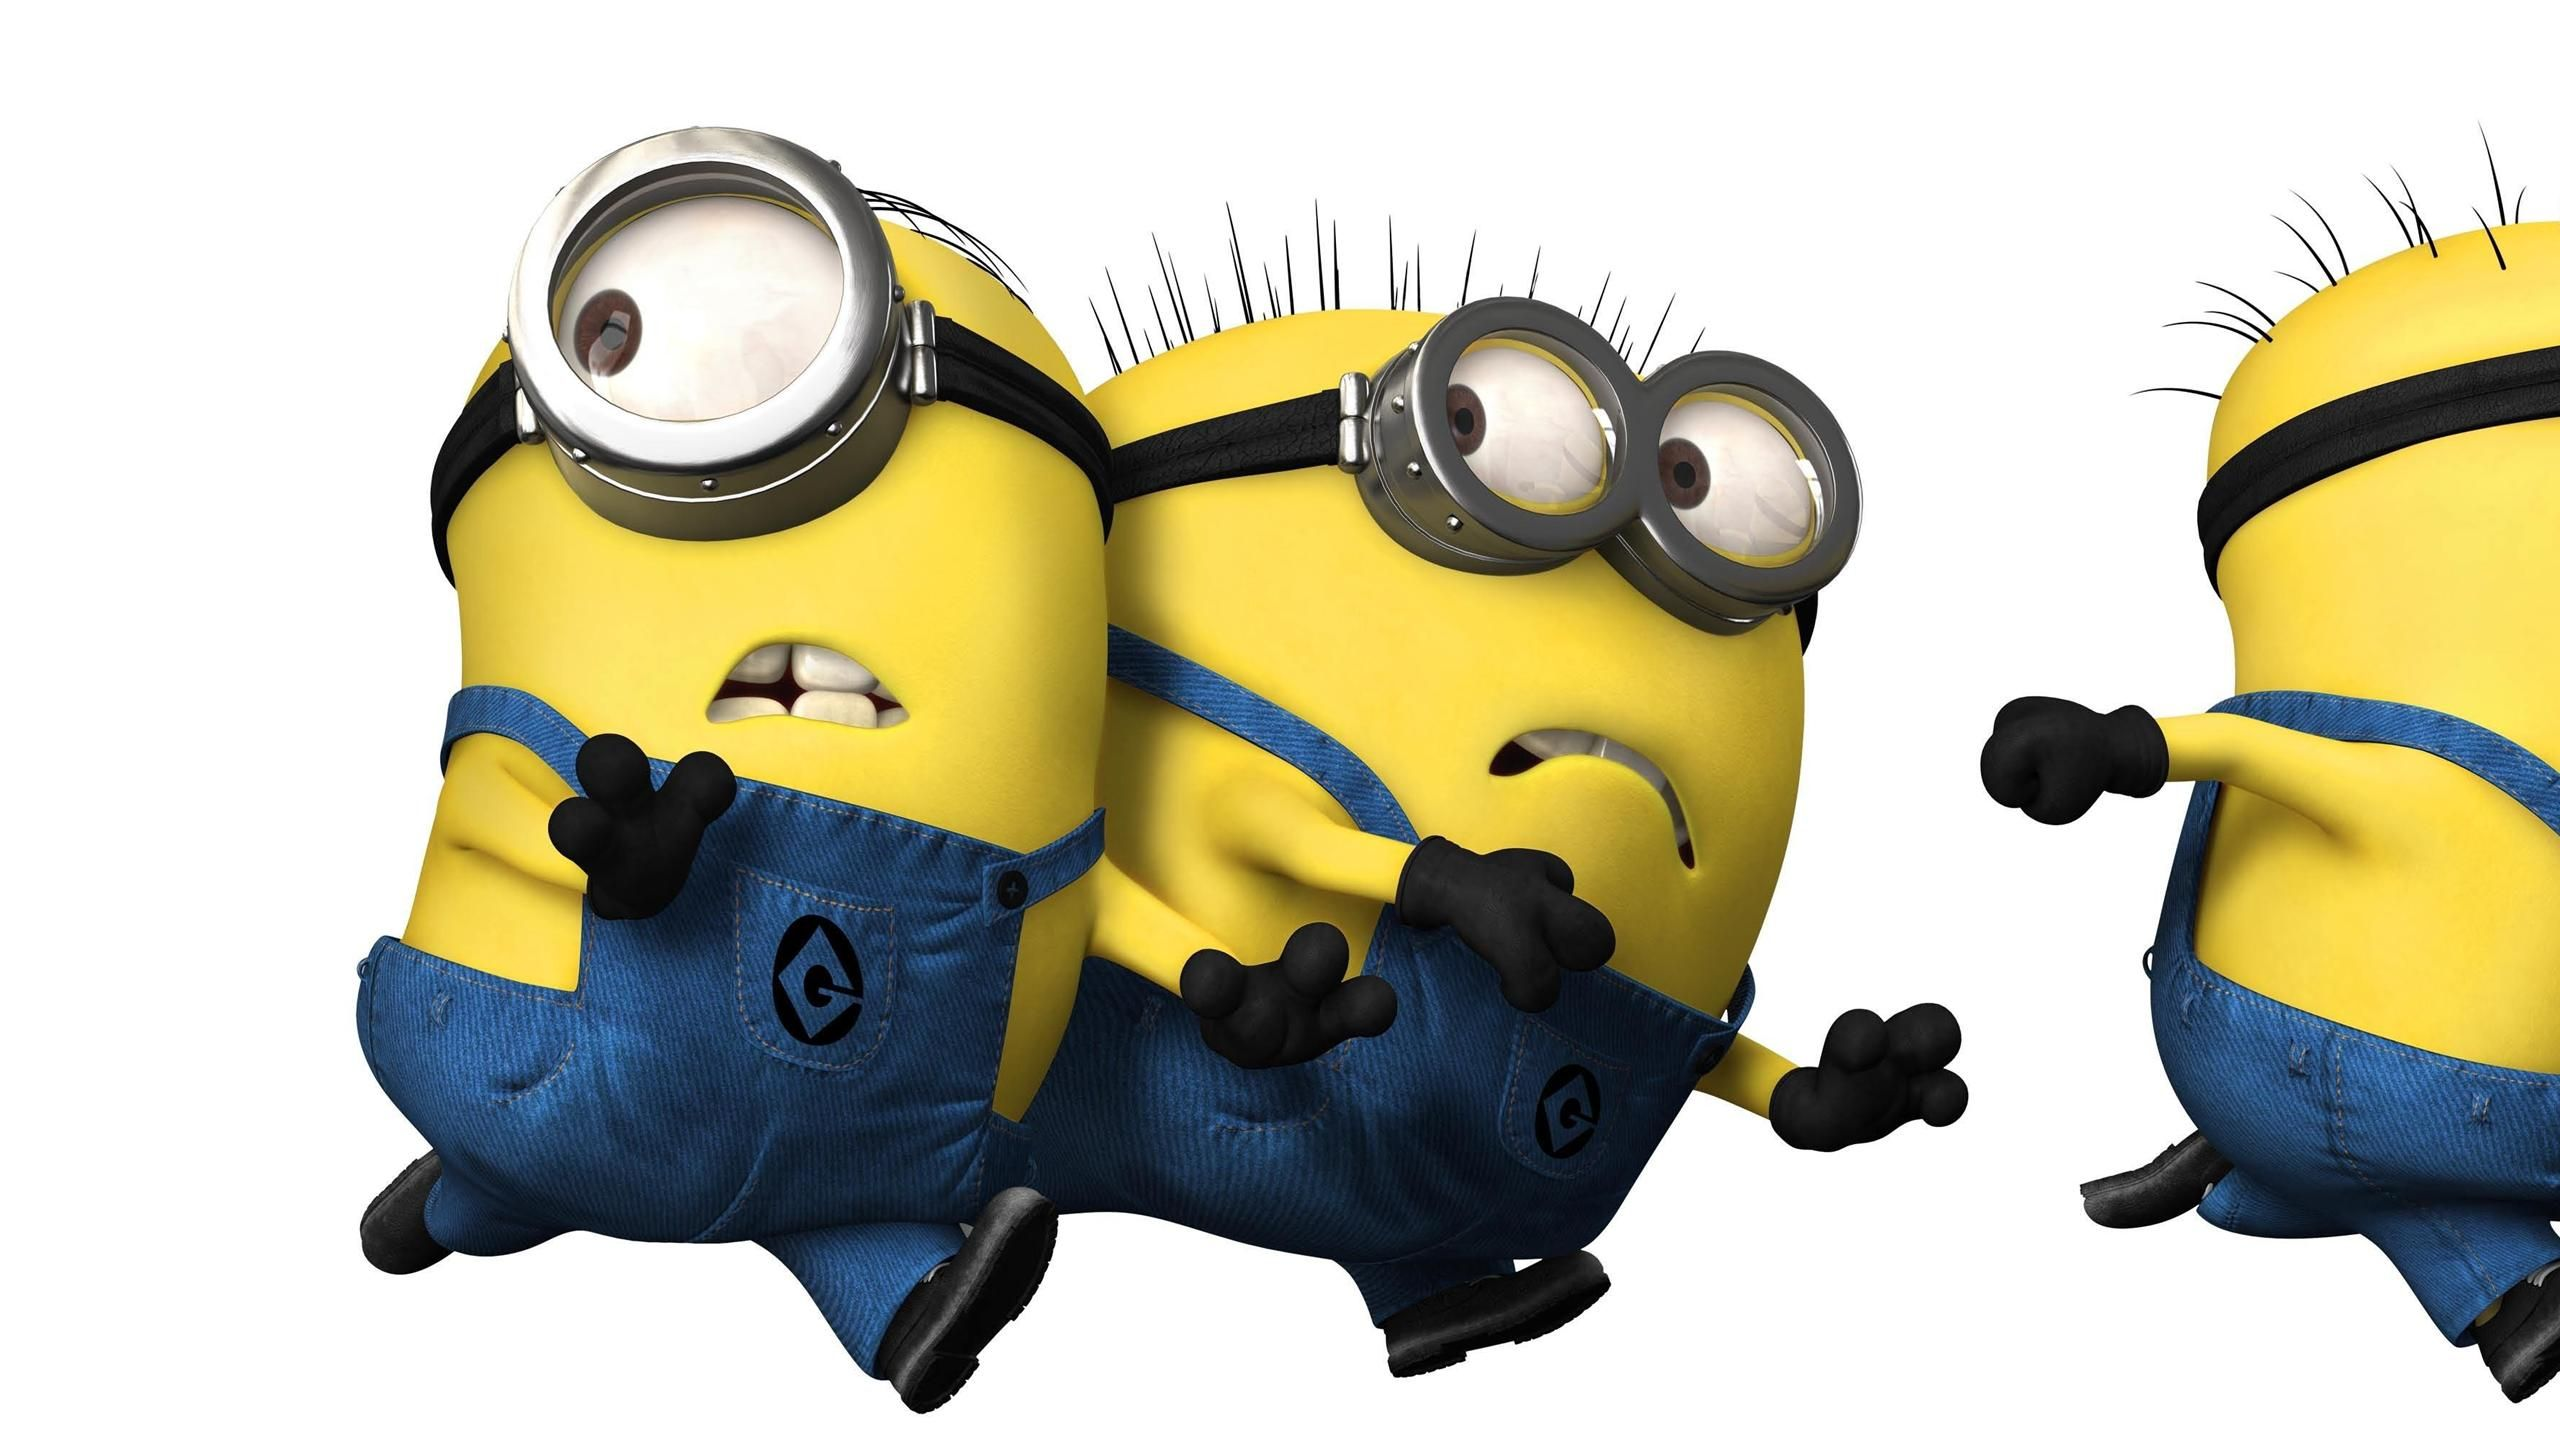 60f4385973d6eb8197d9ee9edd1e6745 cartoons despicable me funny wallpapers images photos 2560�1440,Download Funny Minion Memes